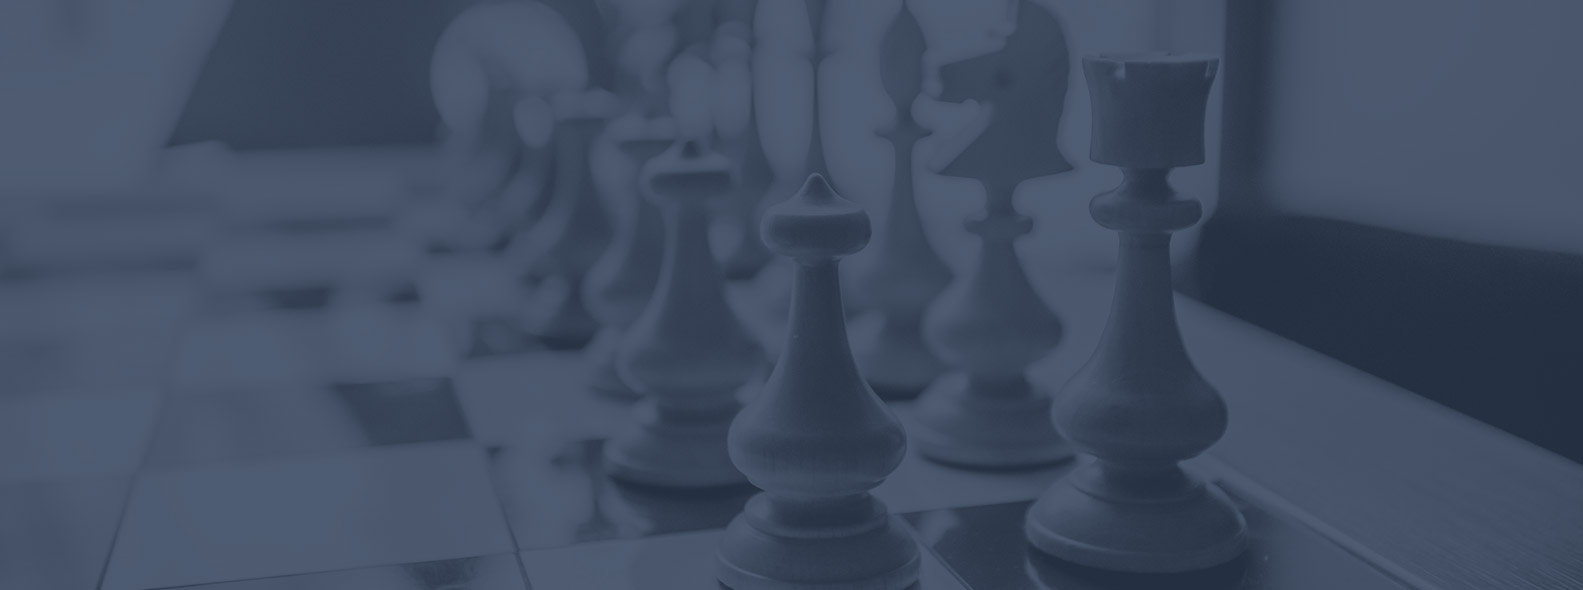 Chess pieces representing due diligence services guiding your banking relationship management for your company